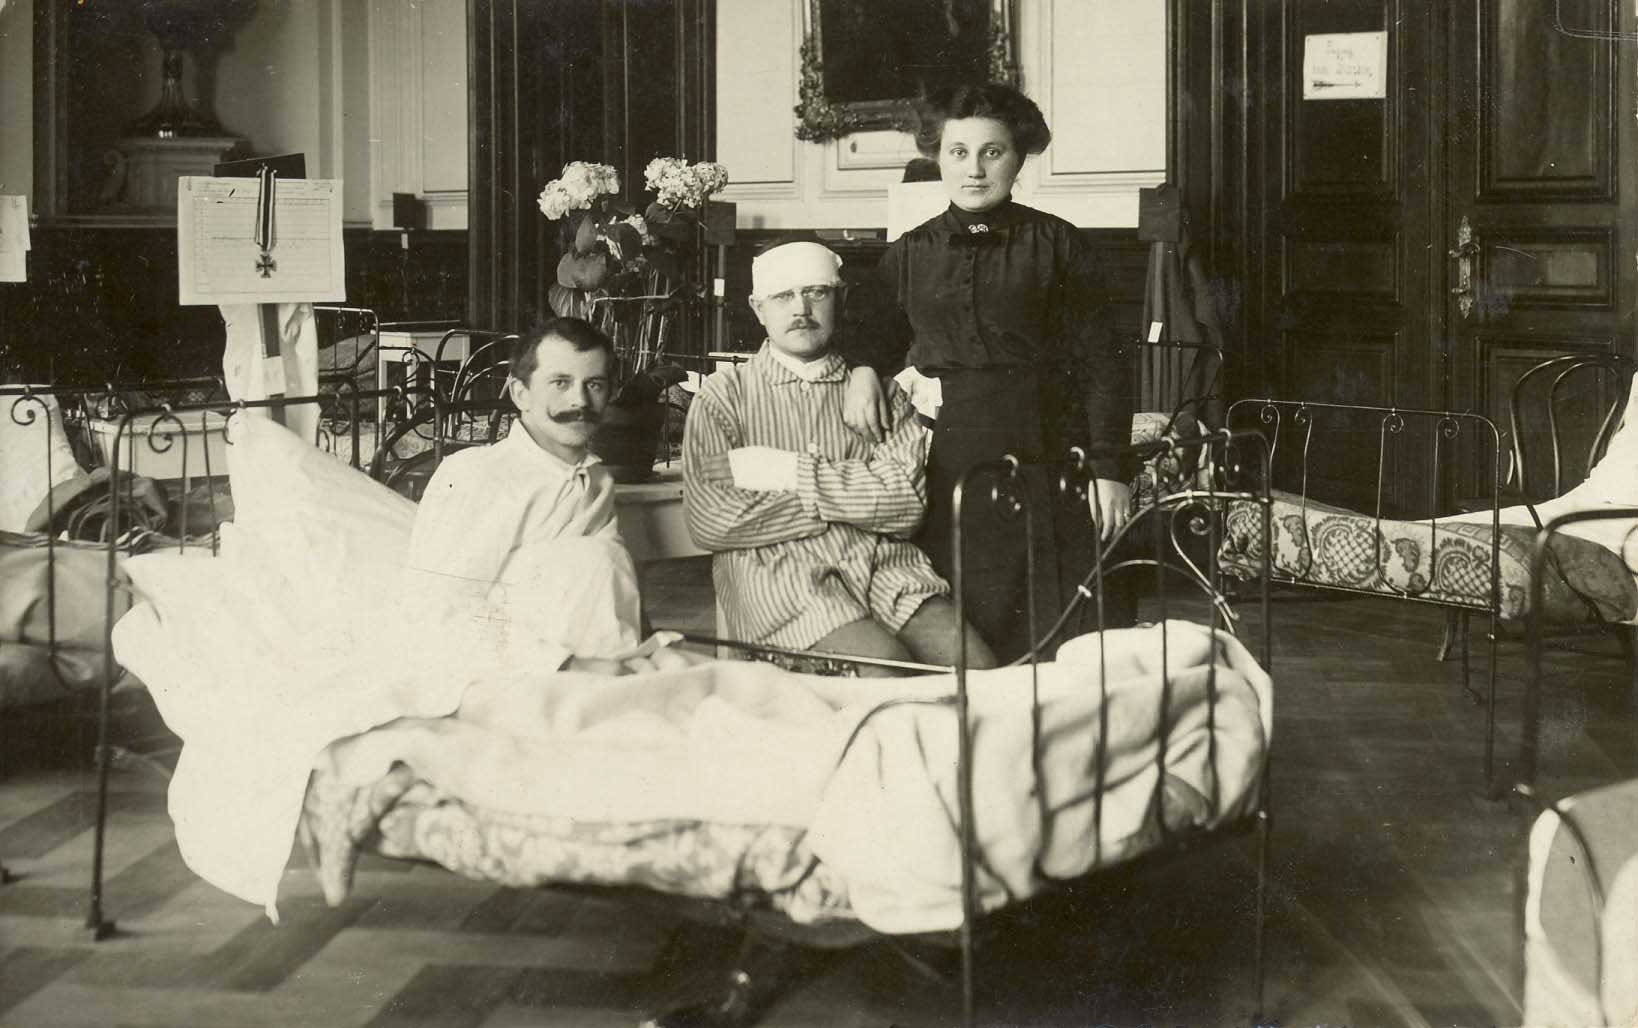 Two wounded German soldiers convalescing at Strasbourg, one of them displaying the Iron Cross.